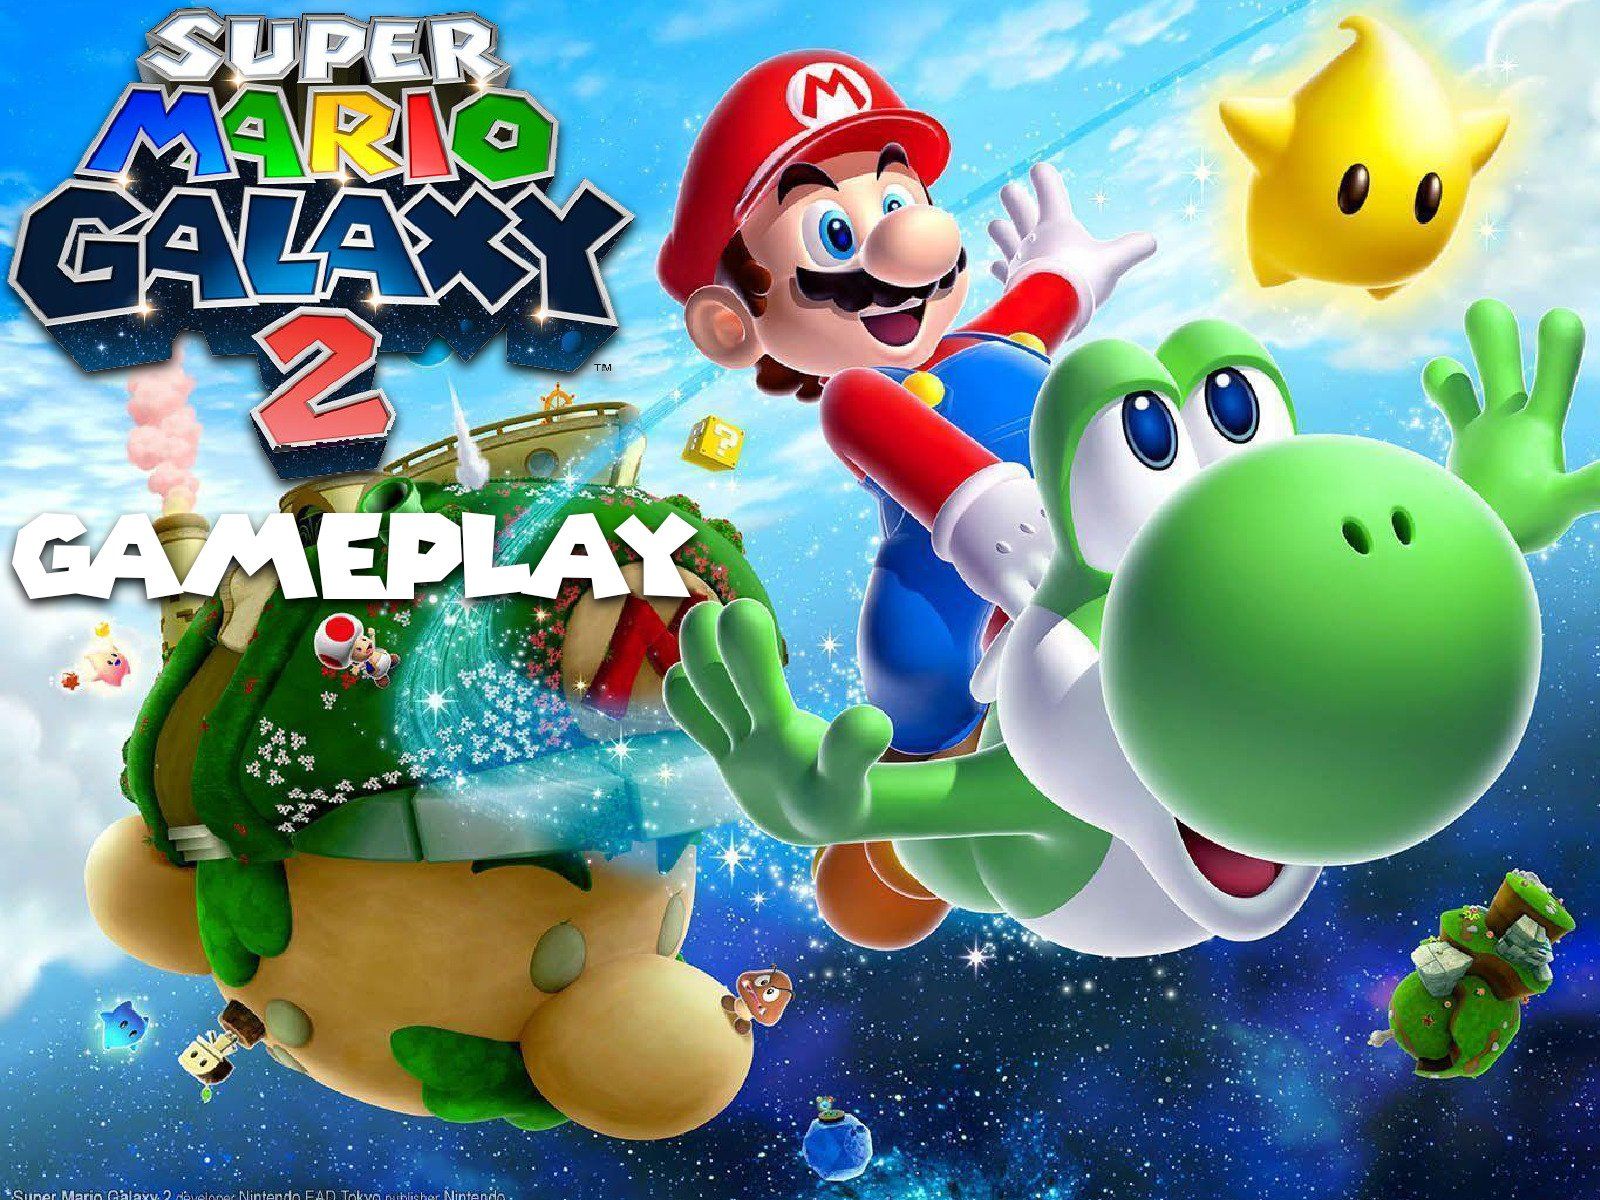 Clip: Super Mario Galaxy 2 Gameplay - Season 1